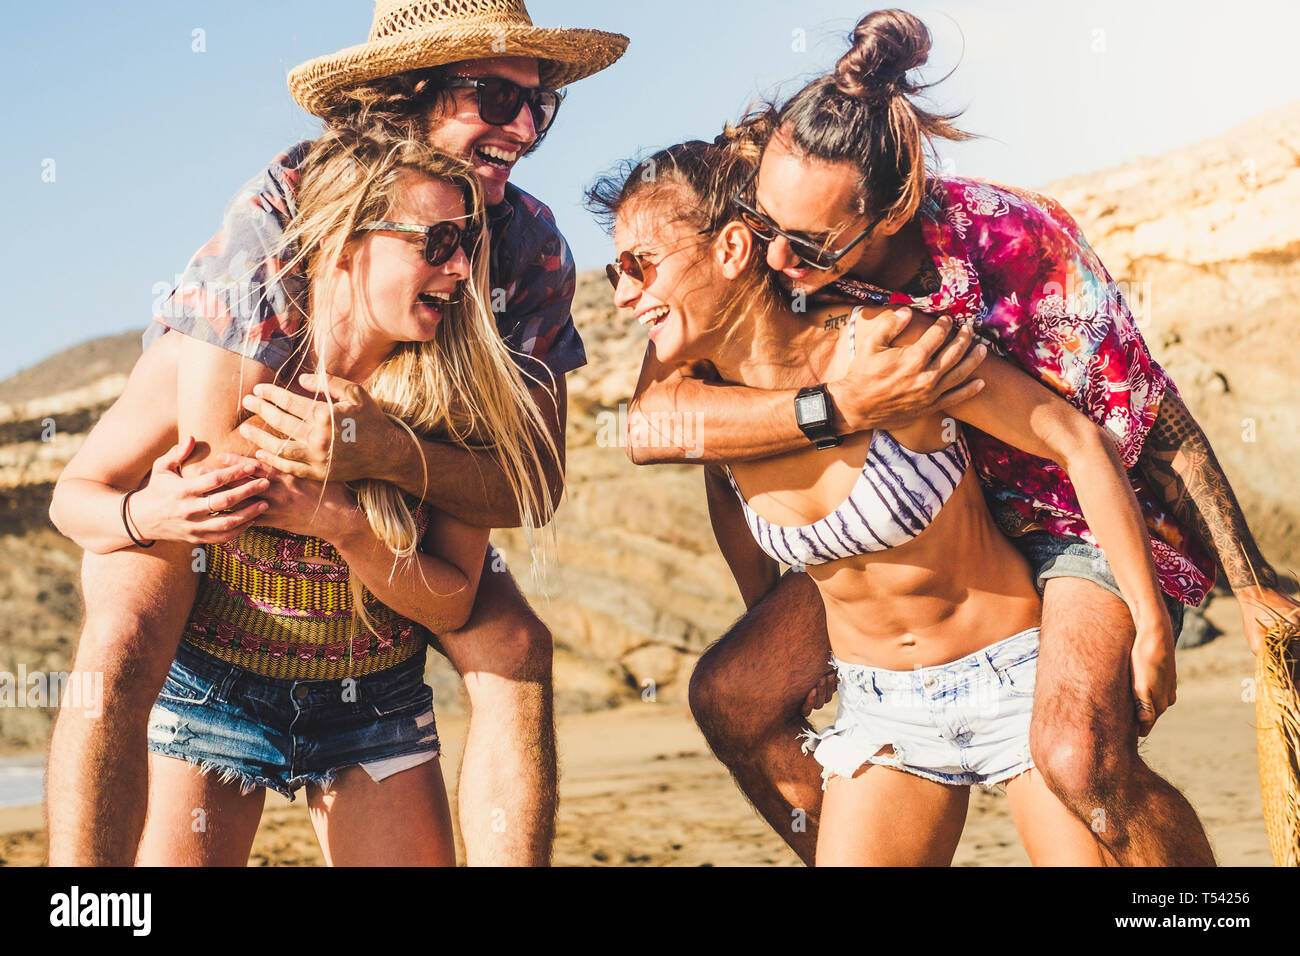 Cheerful happy group of people friends laugh a lot outdoor at the beach - summer travel vacation concept with women carrying men - sun and funny lifes Stock Photo